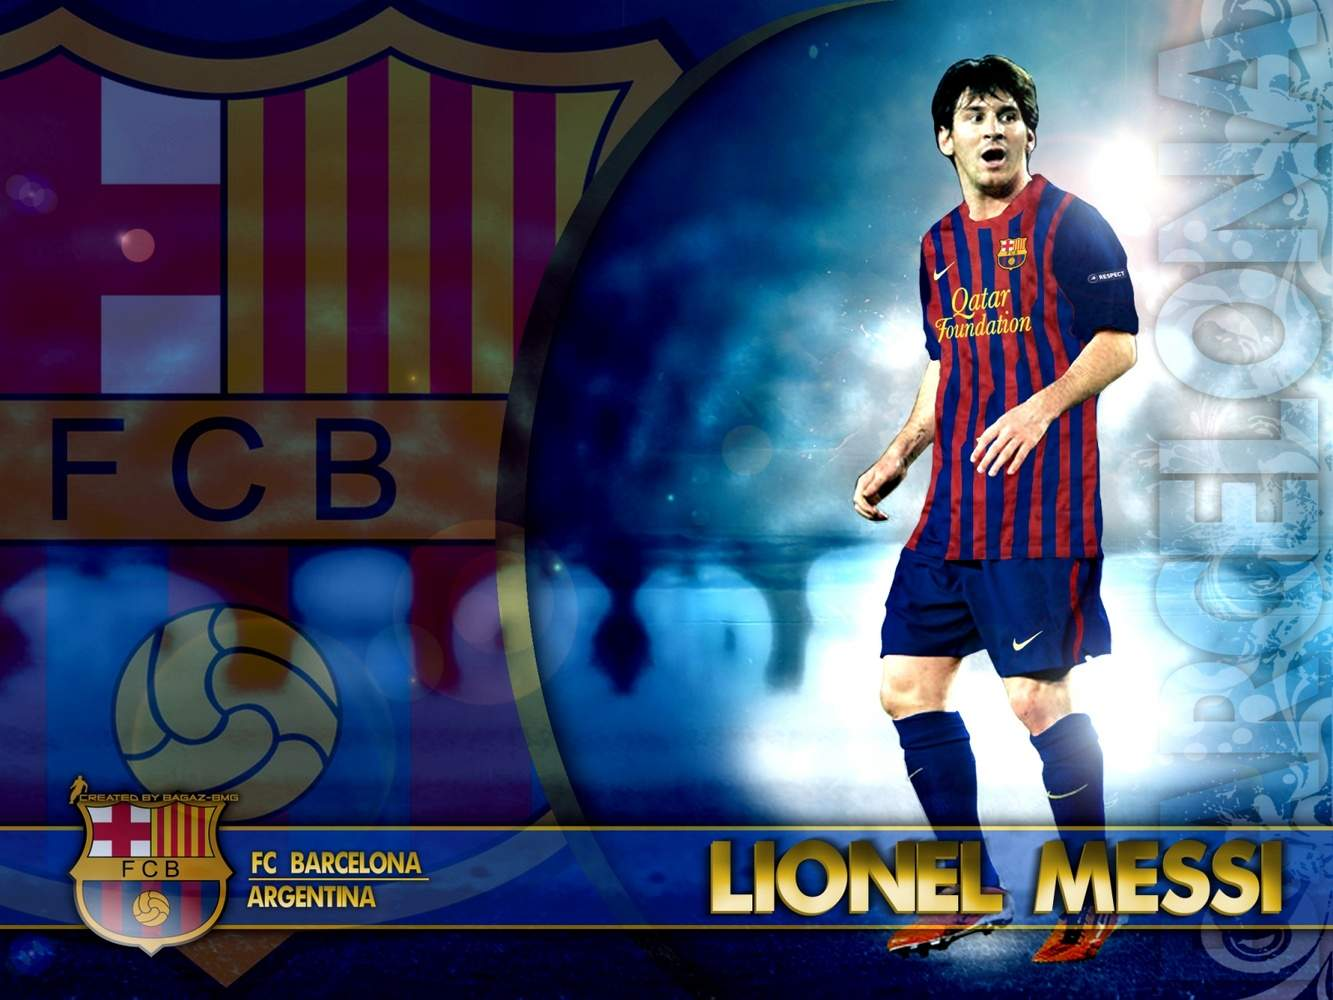 Lionel Messi Wallpaper 13 Hd Background 9 HD Wallpapers amagico 1333x1000